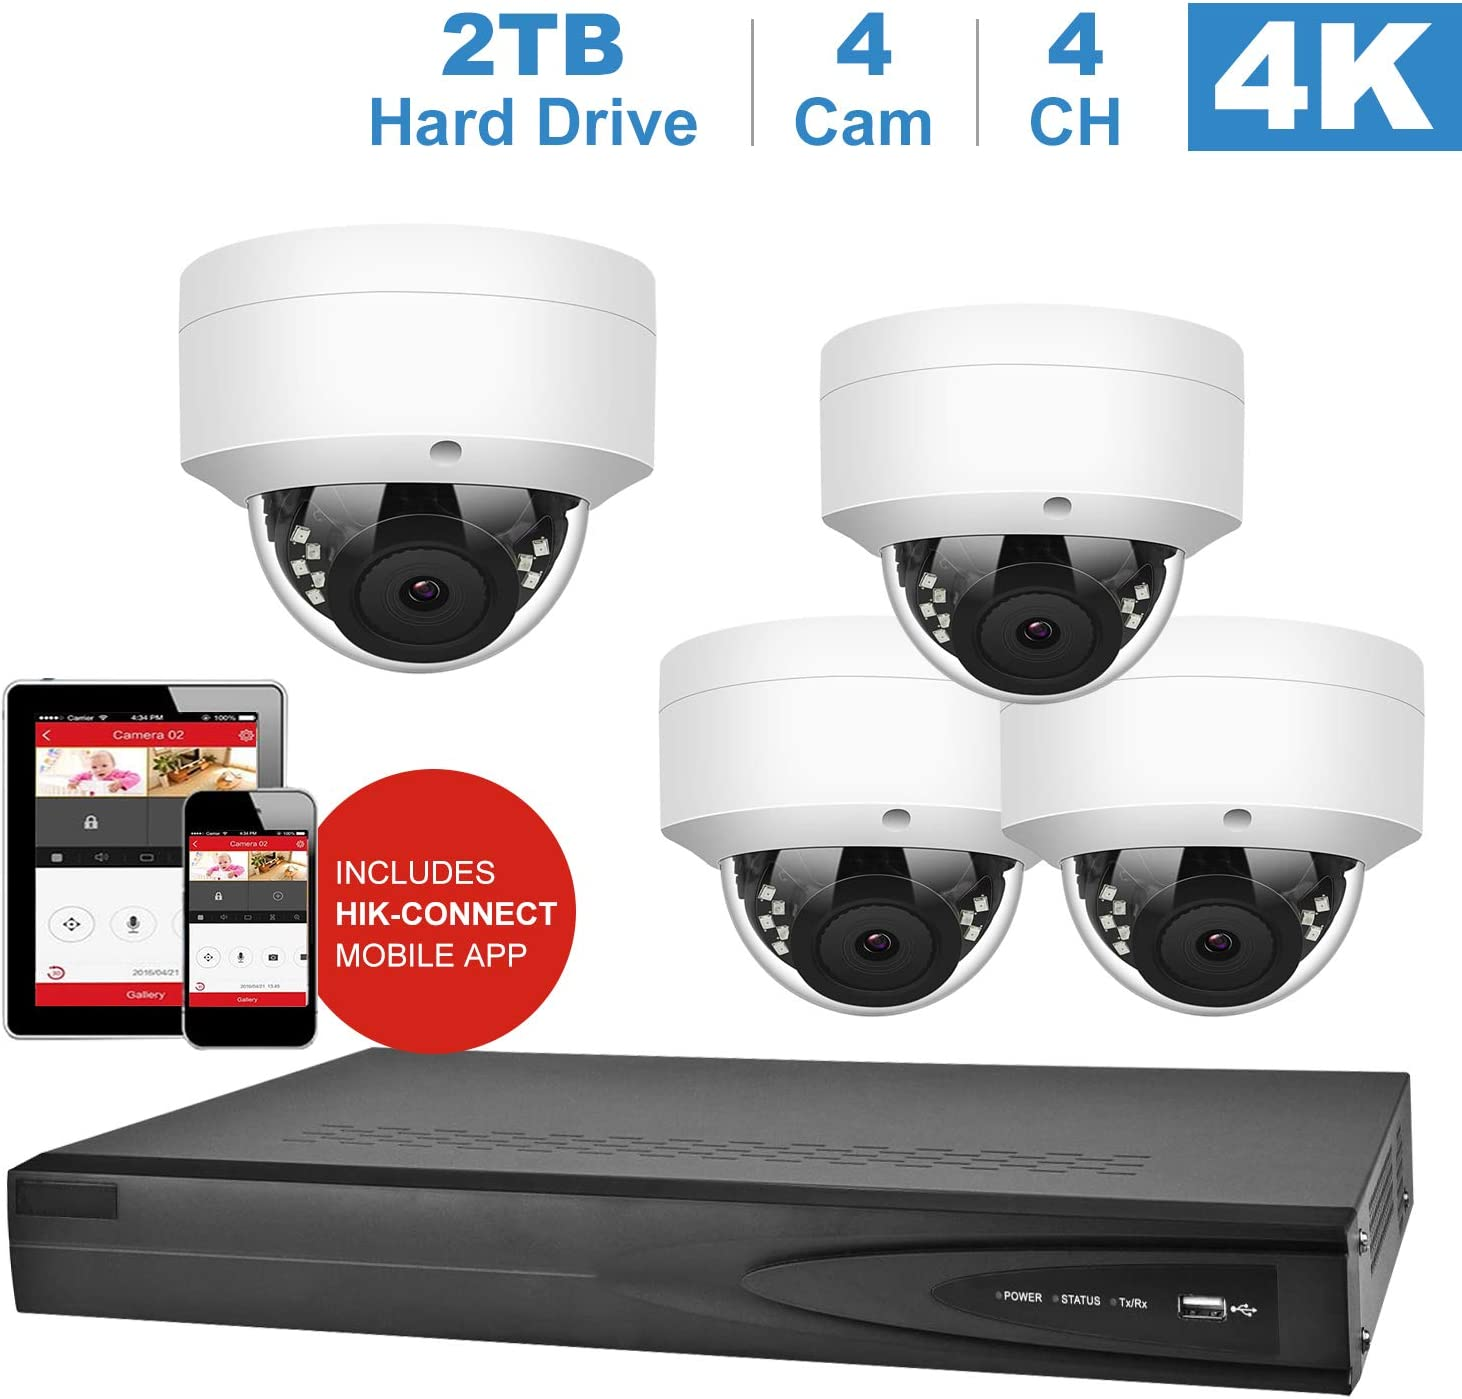 【Audio】 Anpviz Security 5MP 4CH PoE Security Camera System, 4Channel 4K 8MP HD H.265+ Onvif NVR 2TB HDD (Compatible with Hikvision DS-7604NI-K1/4P), 4 Outdoor 5MP 2592x1944P HD IP Cameras, 100ft IR, 71w6NLP32BaL